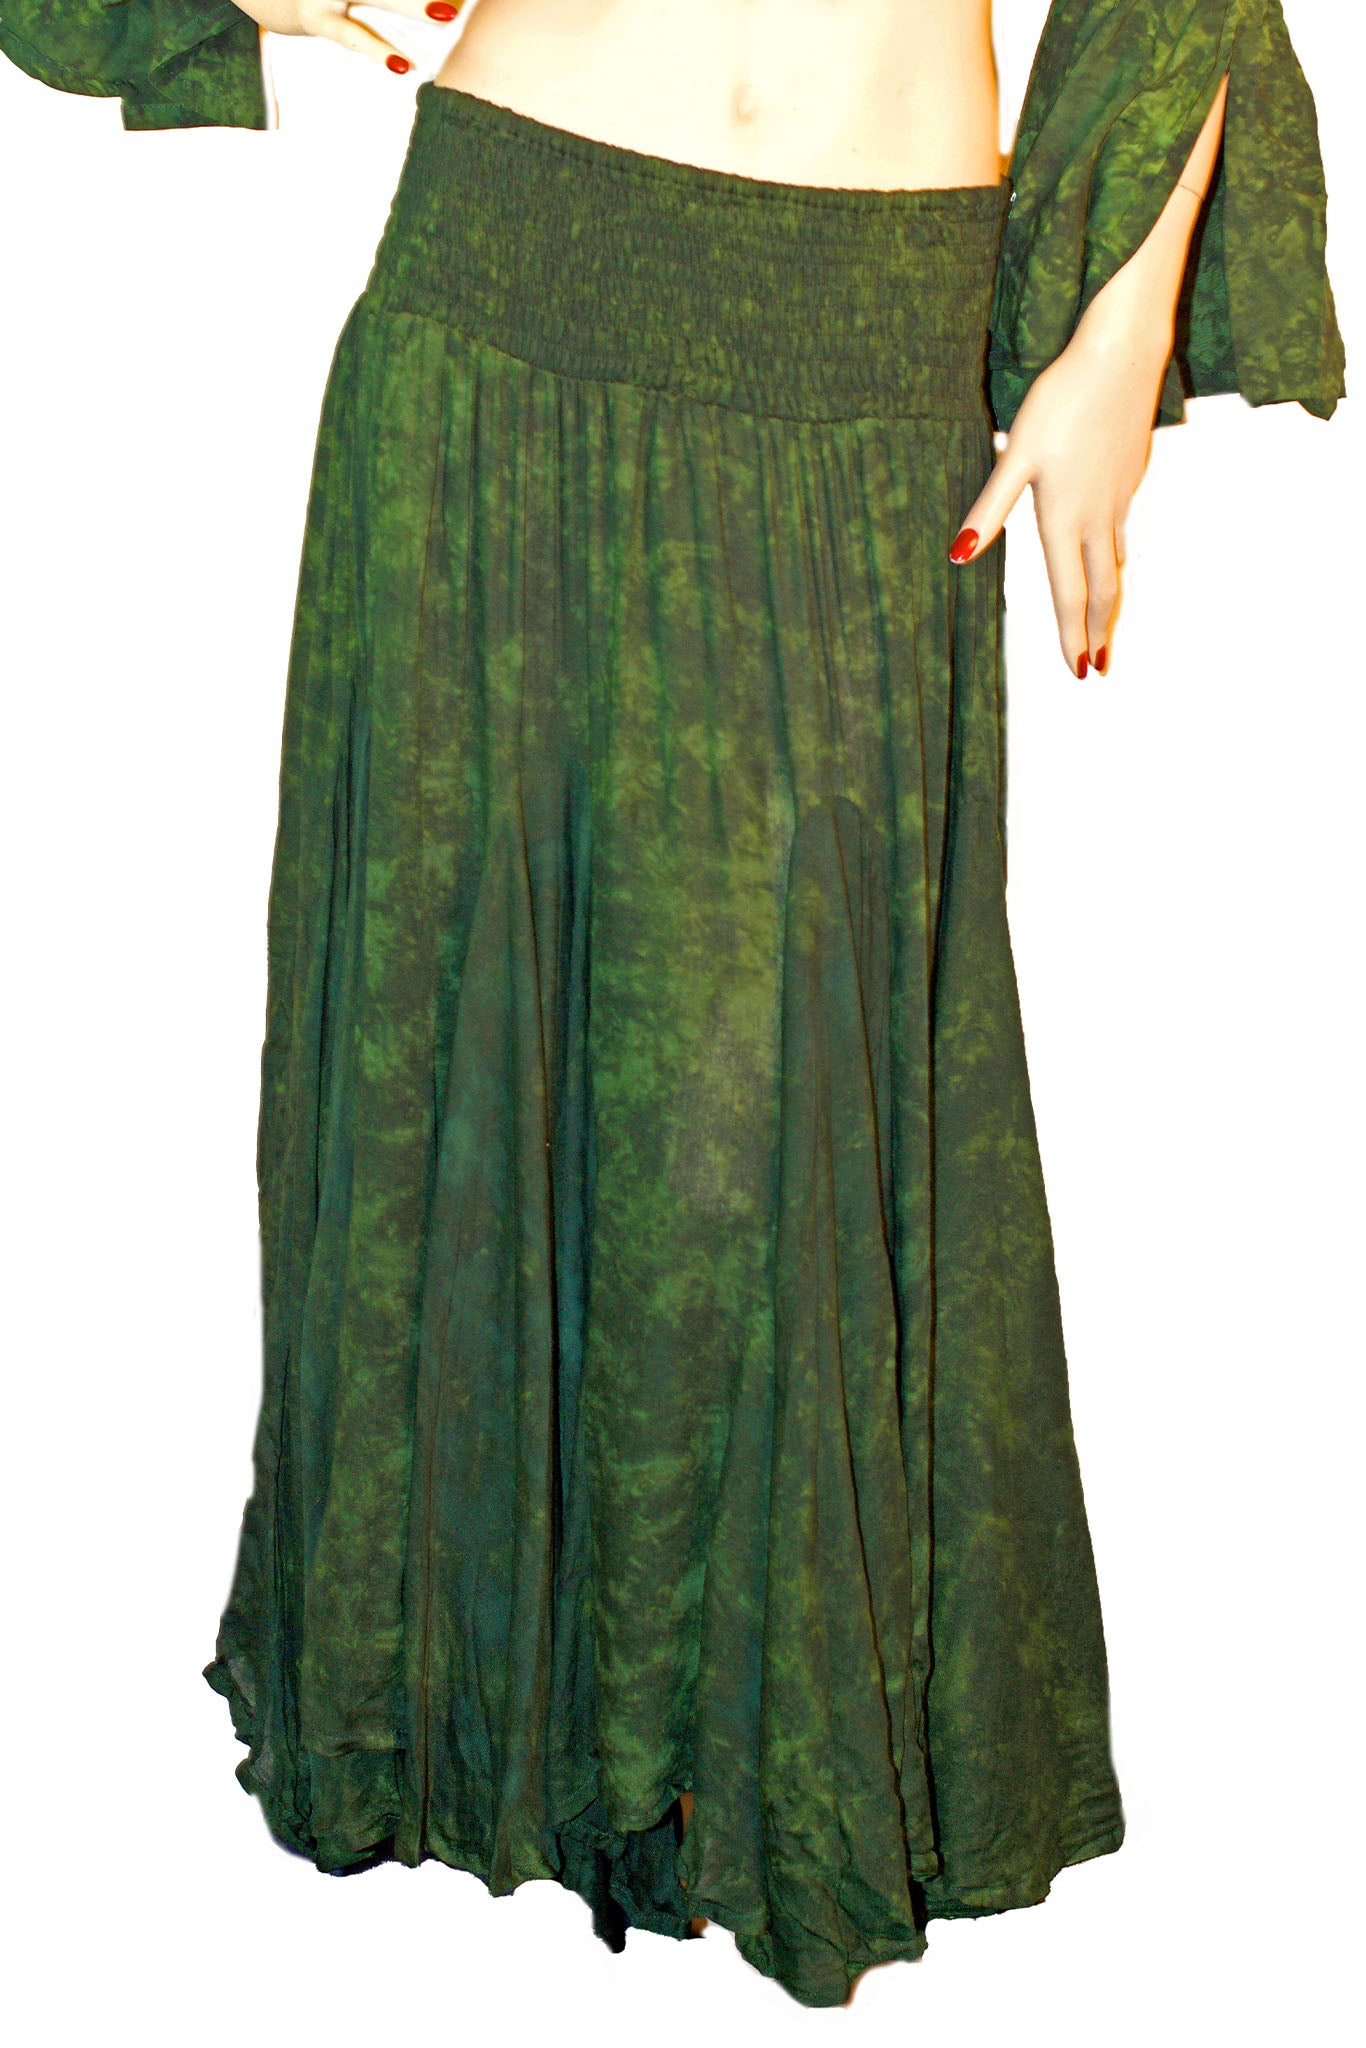 Renaissance Skirt Half Circle Belly Dance Skirt Green